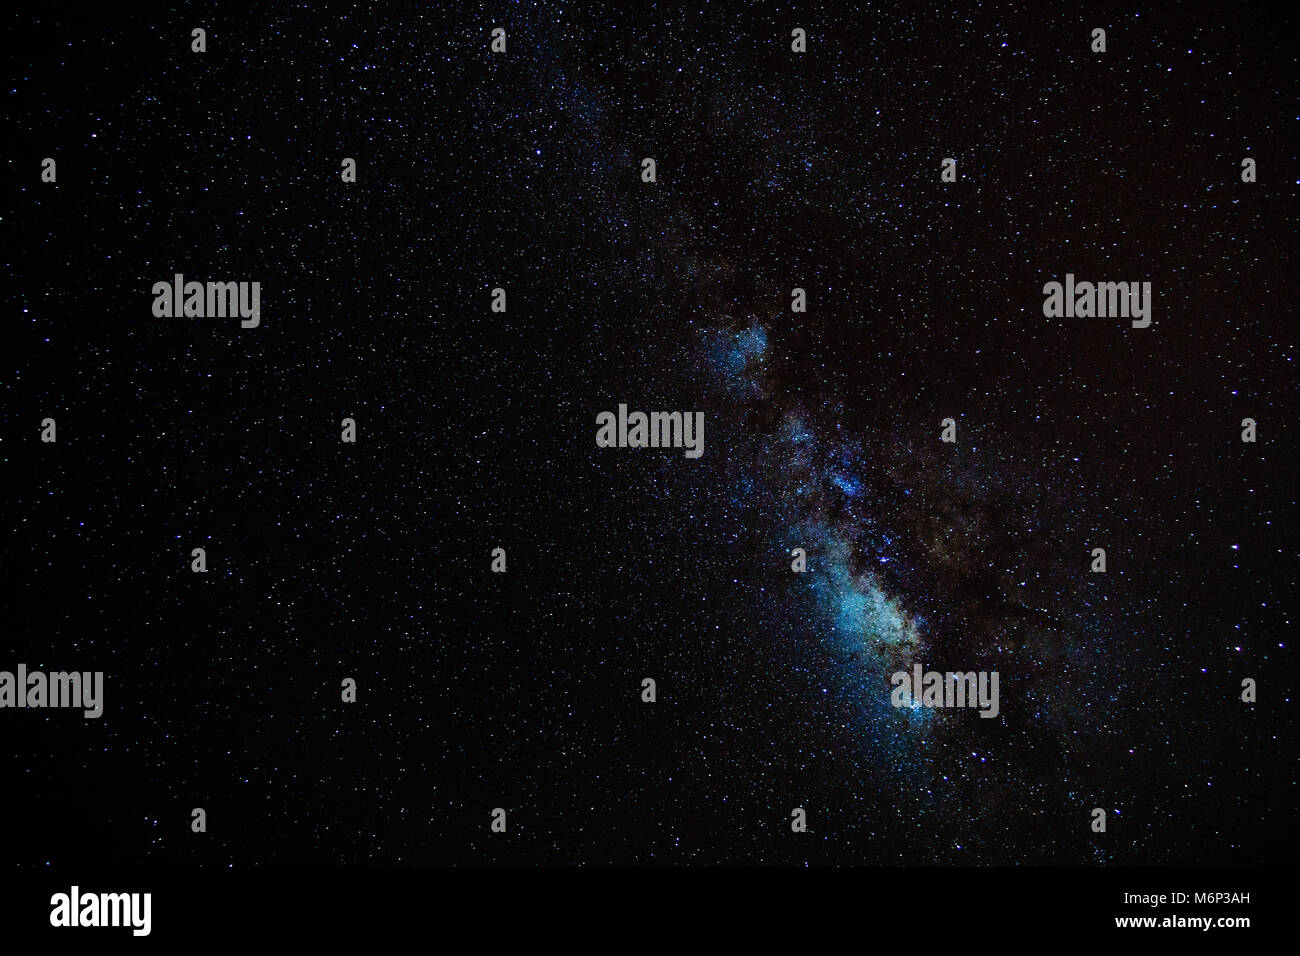 Real astronomic picture taken using camera it is an open stars cluster known as praesepe - Stock Image